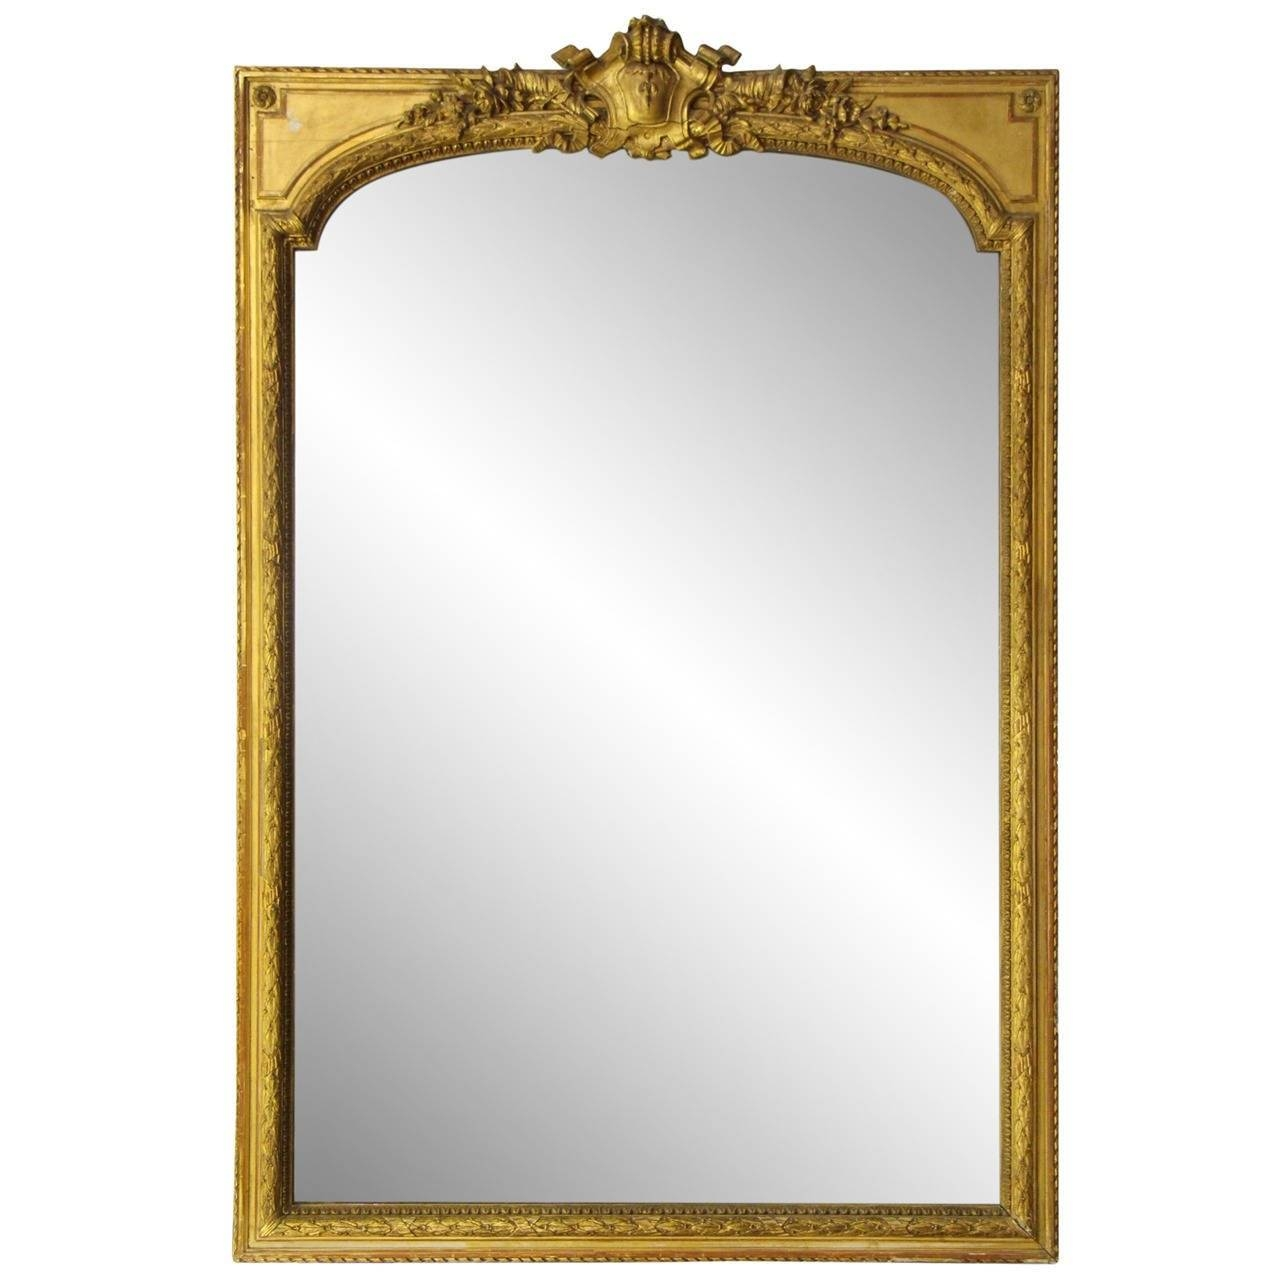 Late 1800s French Gold Gilt Ornate Mirror For Sale At 1stdibs With Ornate Gilt Mirrors (View 7 of 15)